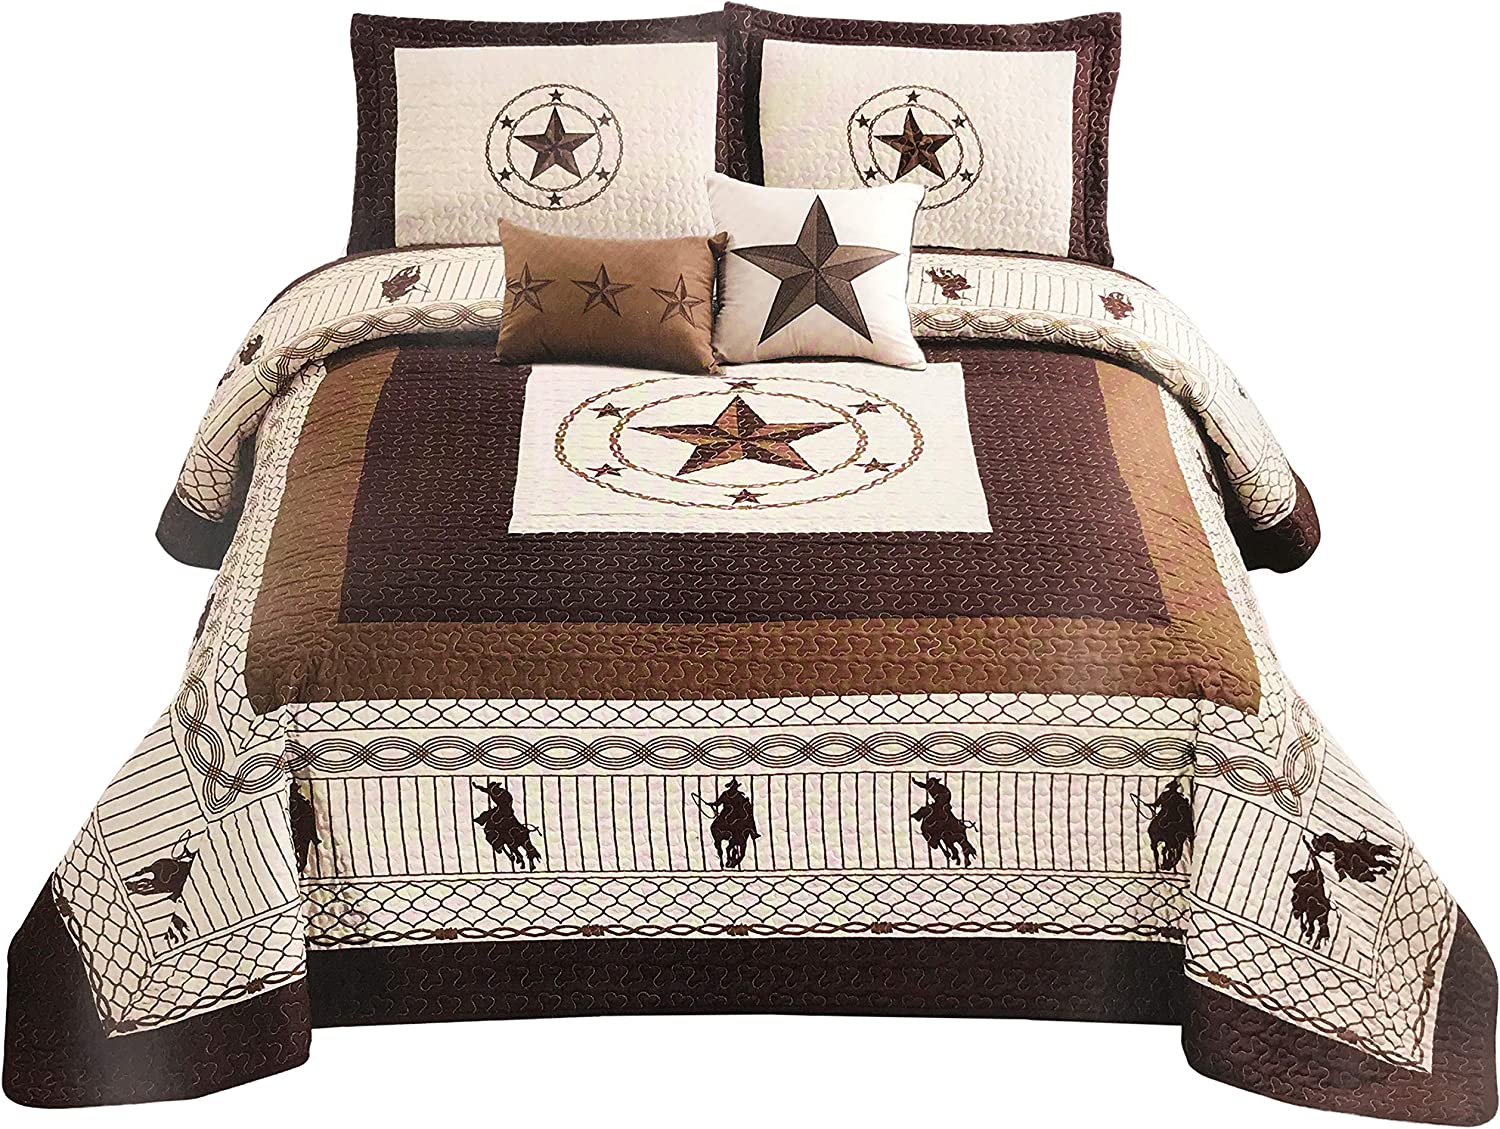 Save money Western Collection New 5 Pieces Spasm price Stars Horses and Cowboy